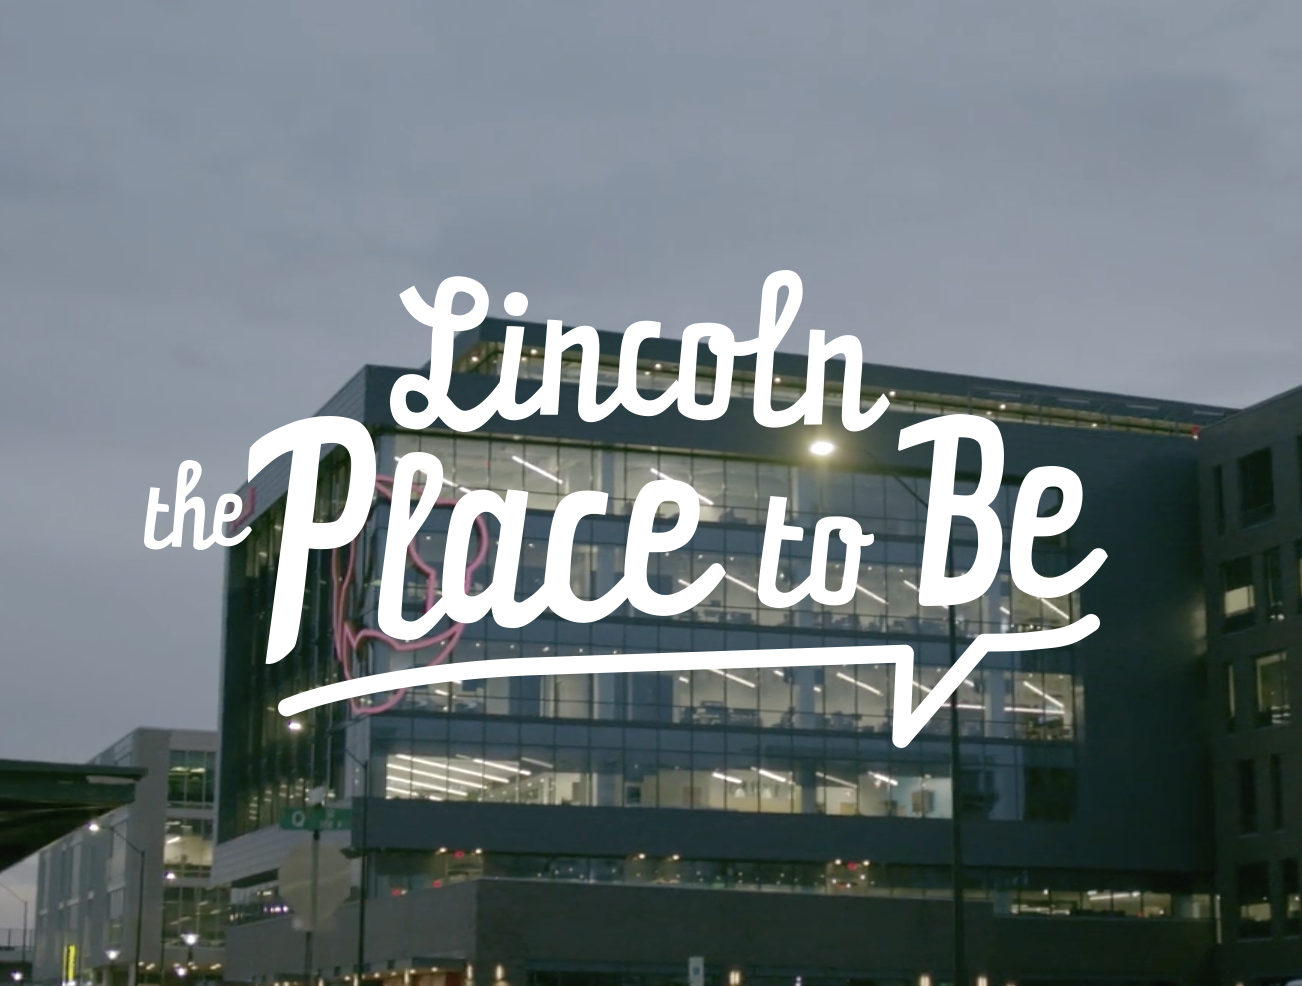 Lincoln - The Place to Be